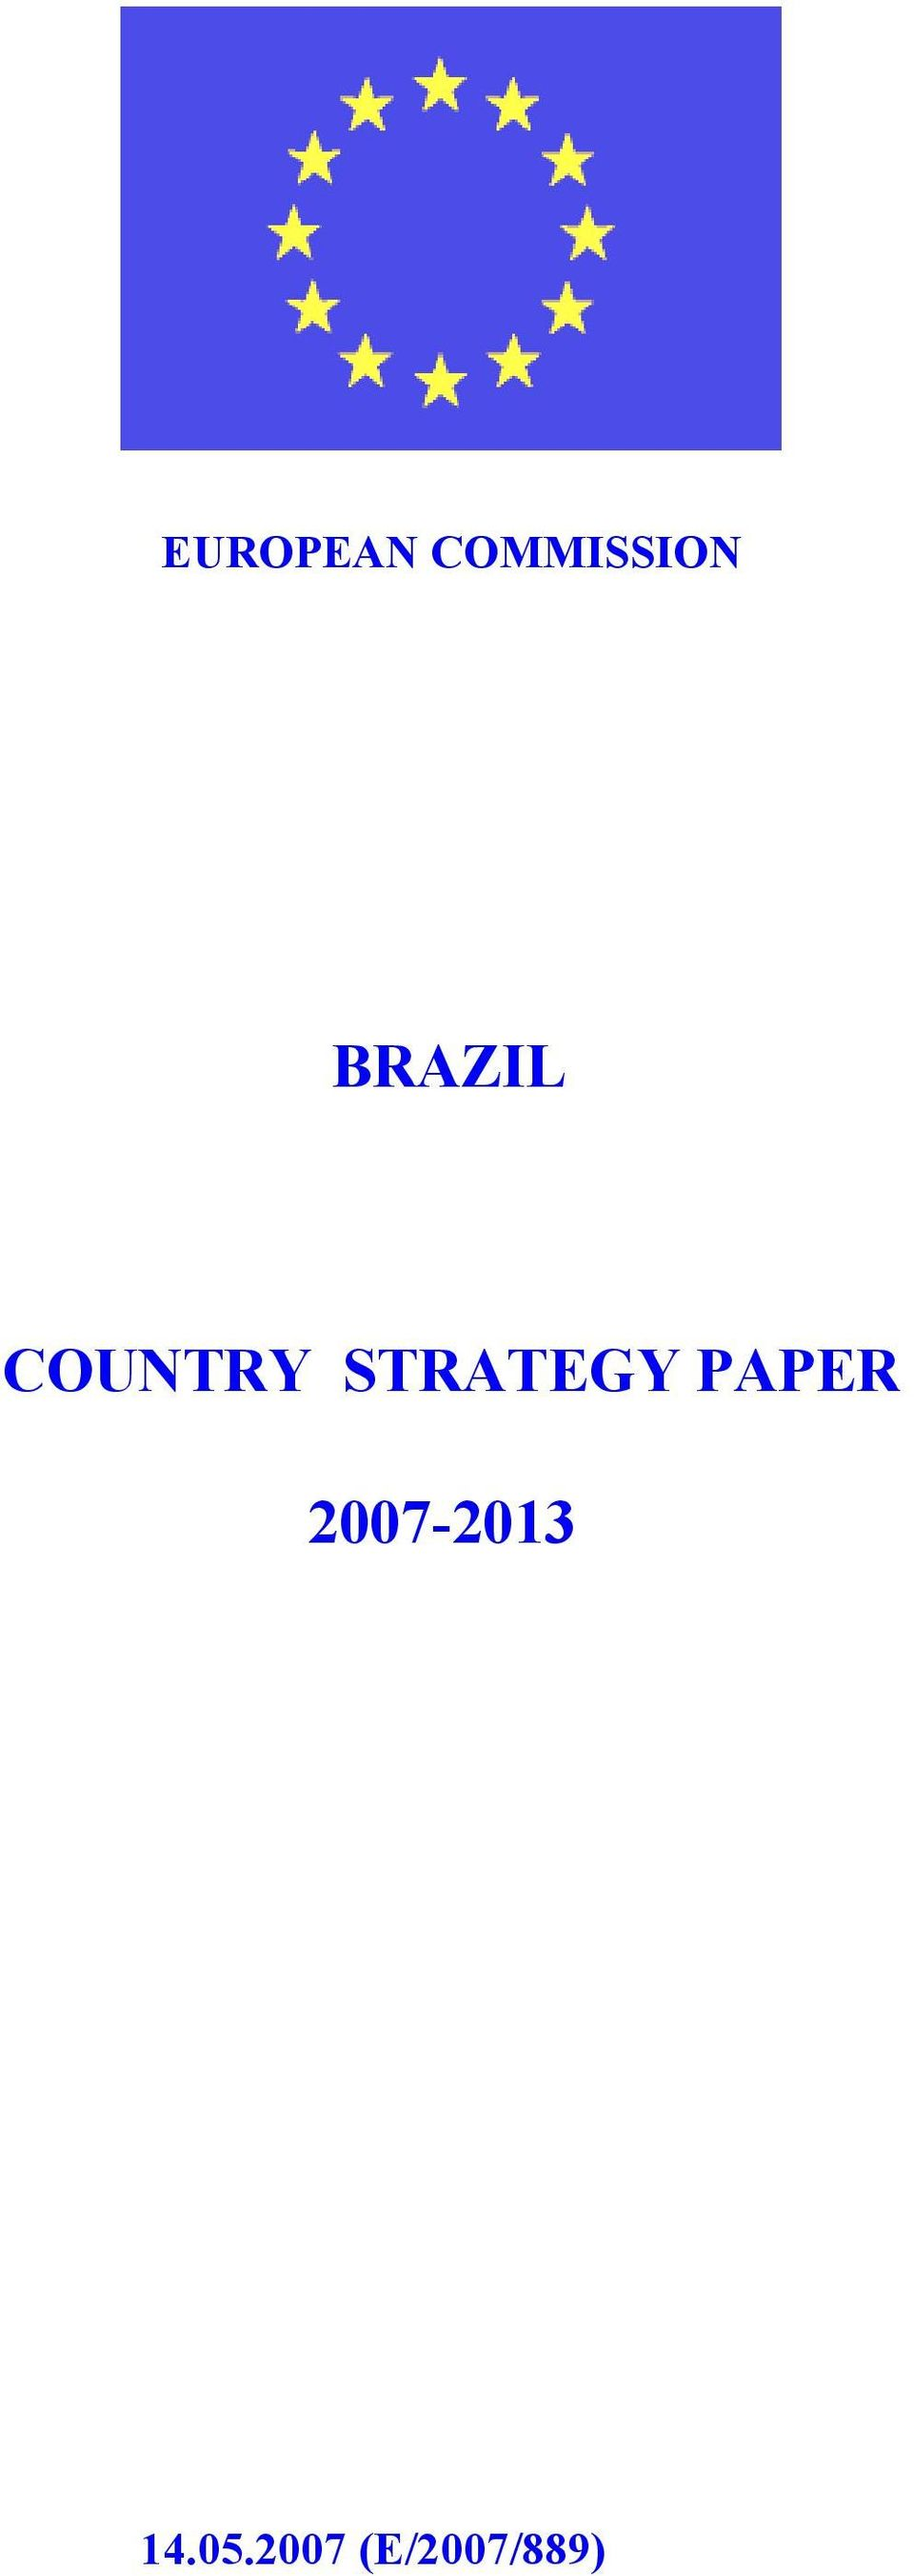 STRATEGY PAPER